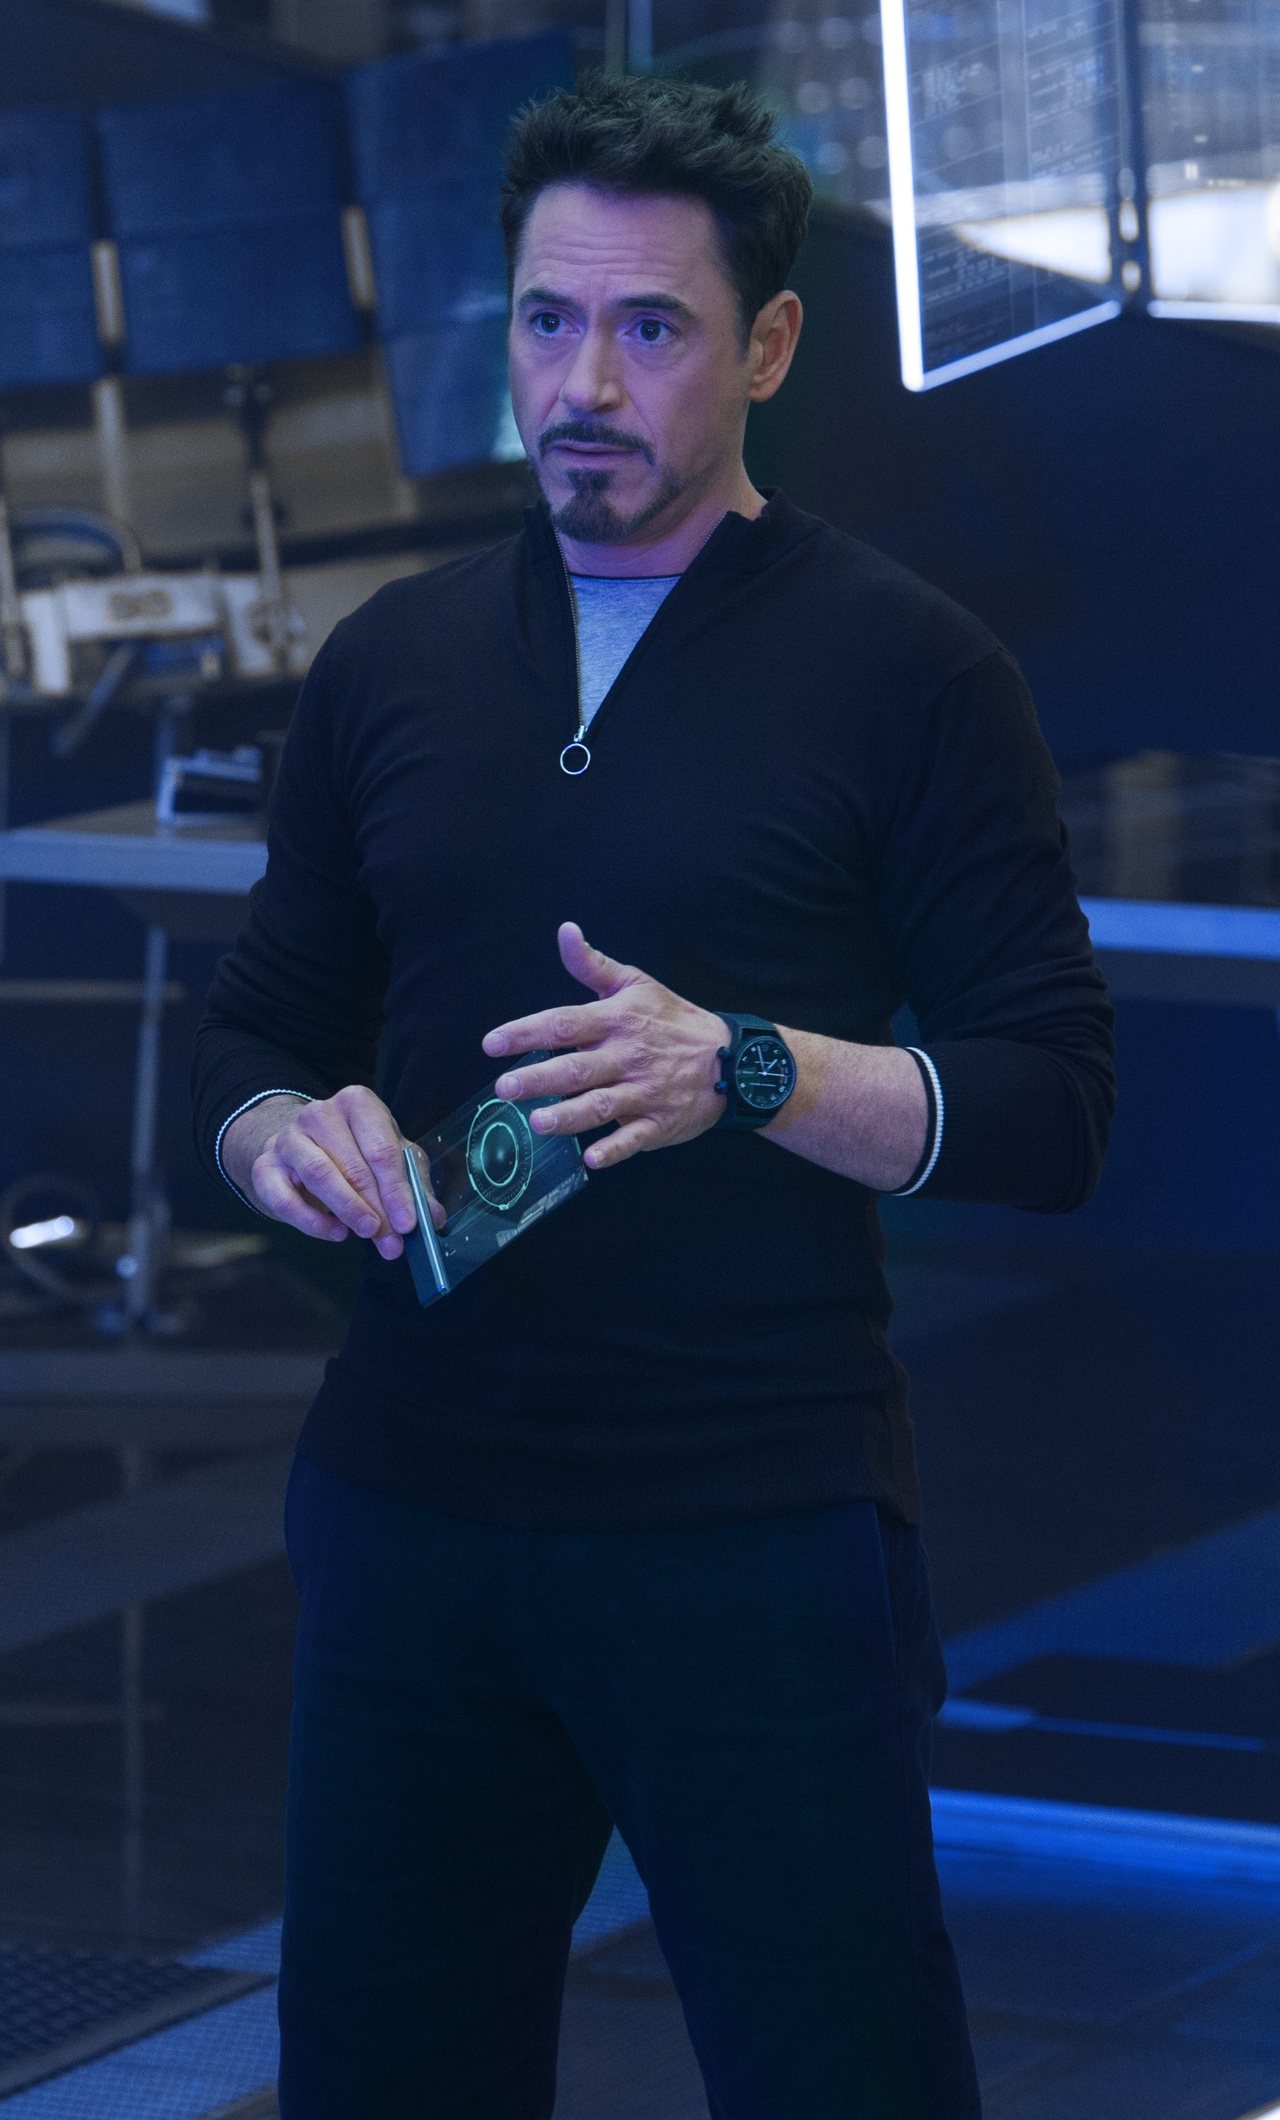 1280x2120 tony stark bruce banner 5k iphone 6+ hd 4k wallpapers